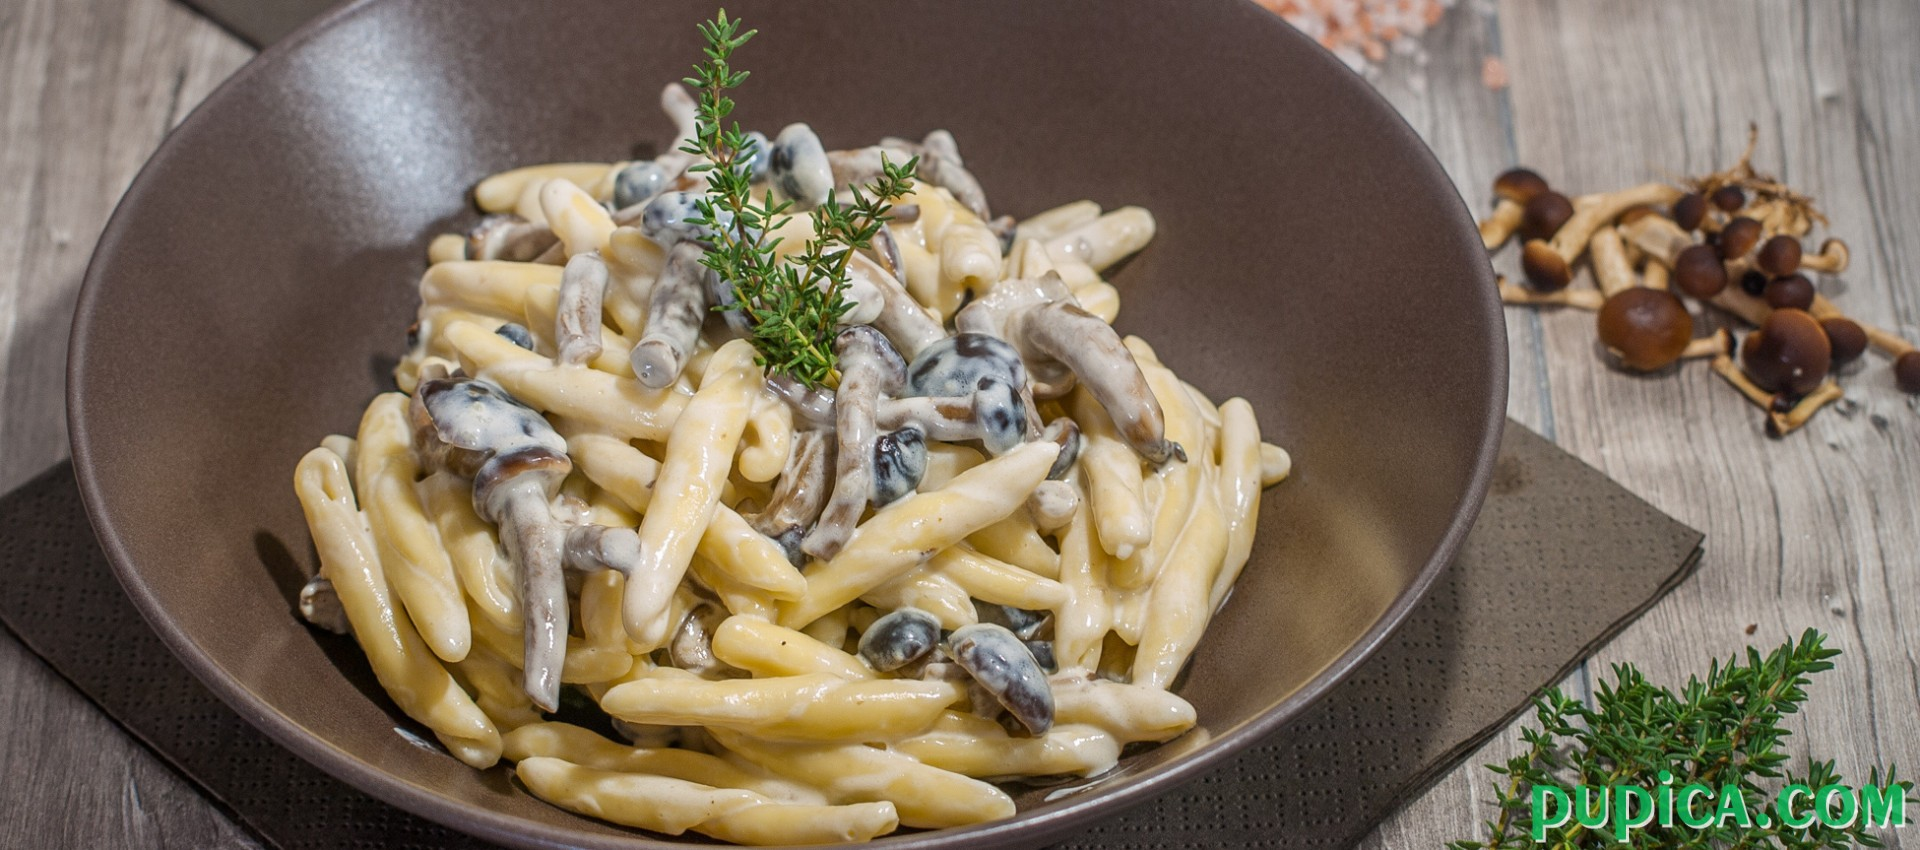 Pasta with Mushrooms and cooking cream